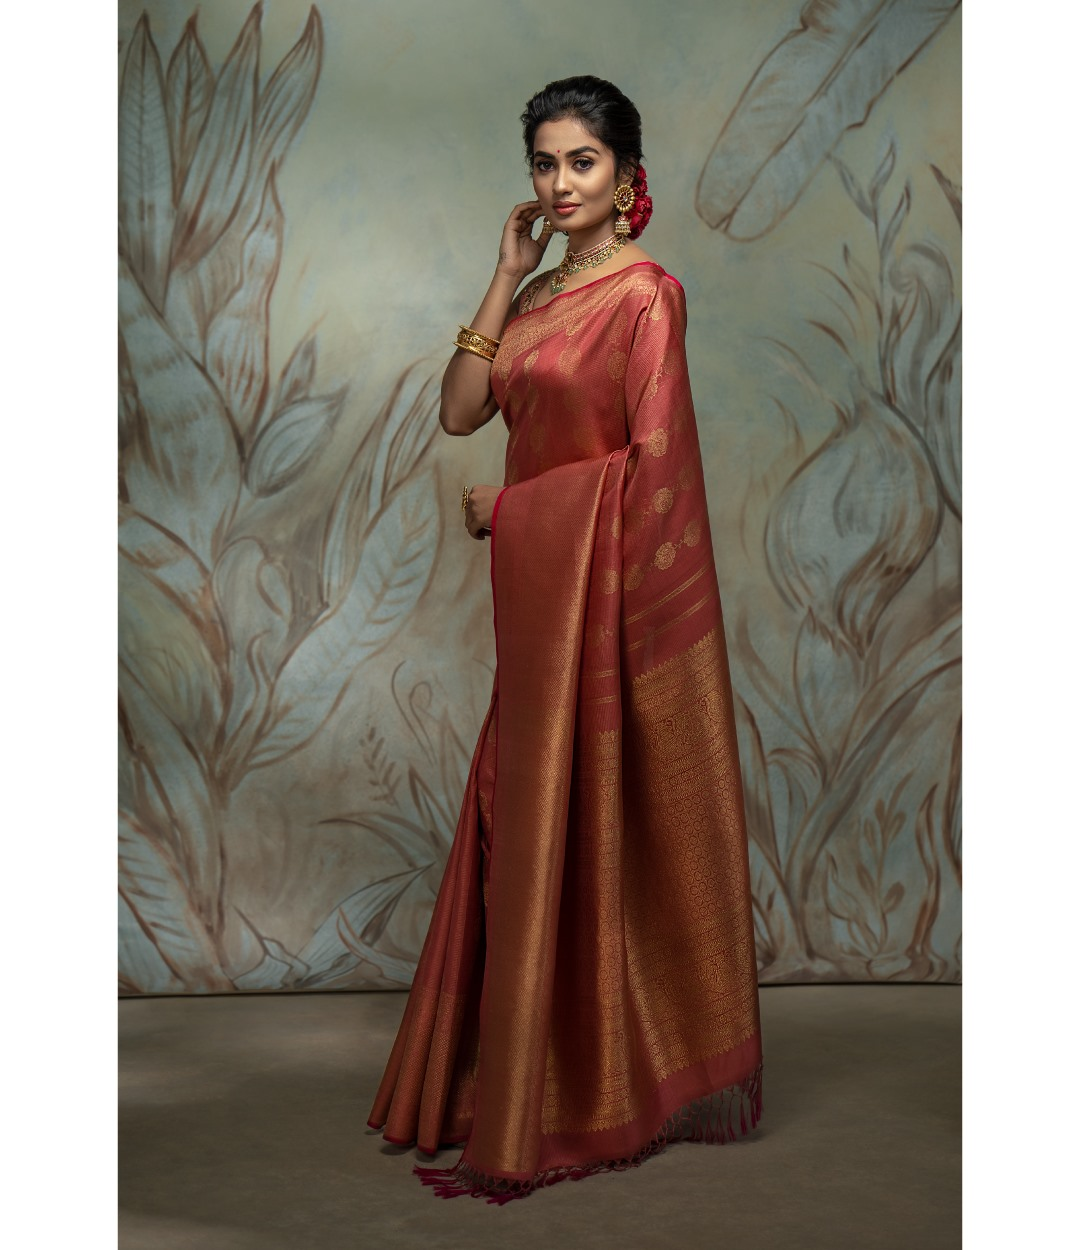 Gorgeous onion pink Kanchi silk saree adorned with  rose motifs allover. Elegance personified! 2021-04-01